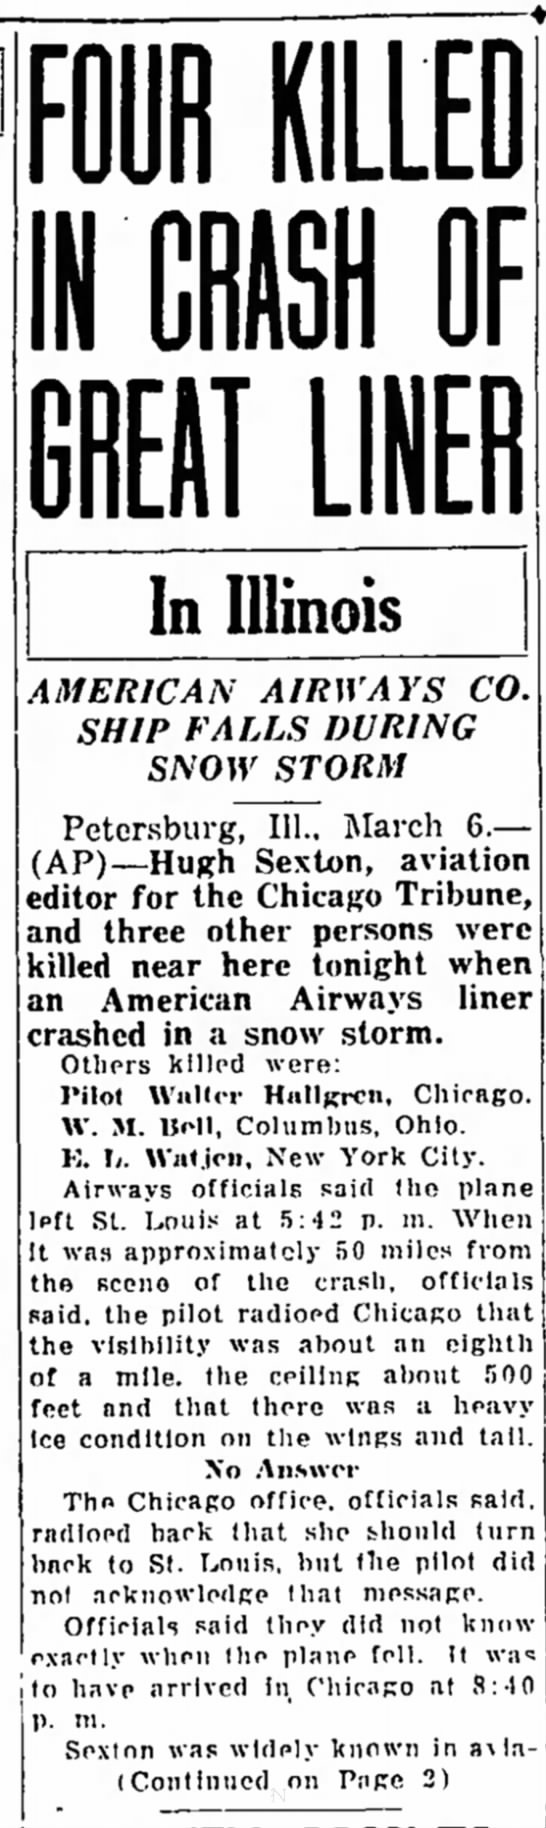 Knoles great liner accident page 1 7 march 1934